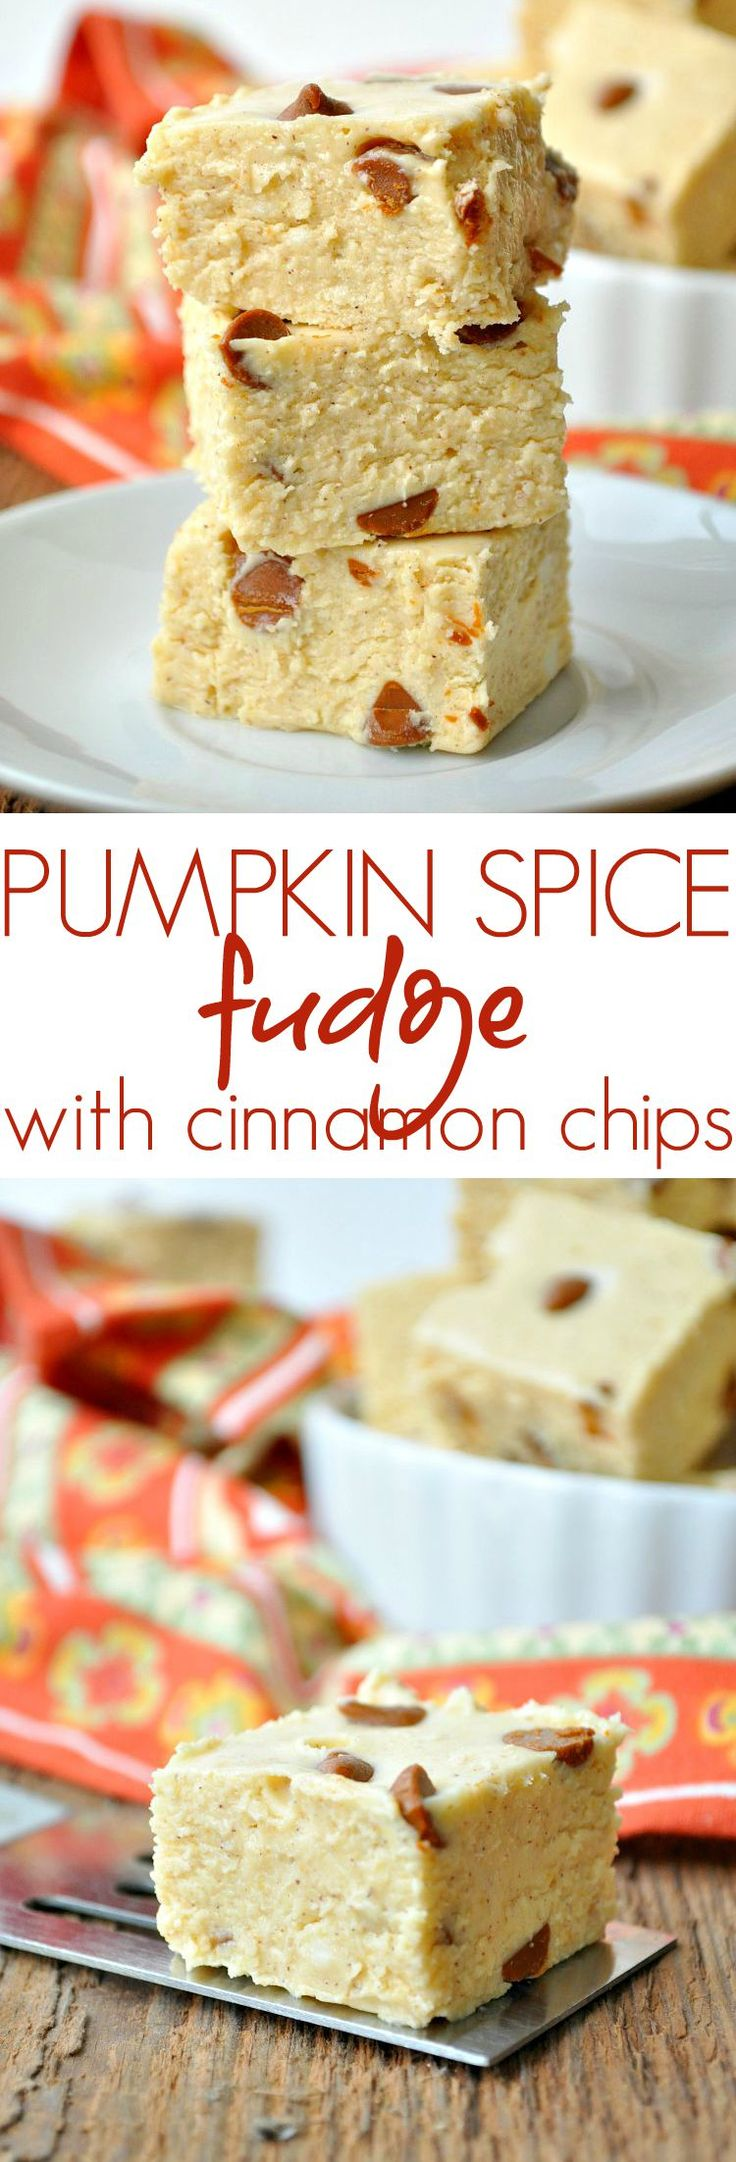 This PUMPKIN SPICE FUDGE is made in the microwave for an easy fudge recipe that your family and friends will devour. It's a perfect holiday dessert!